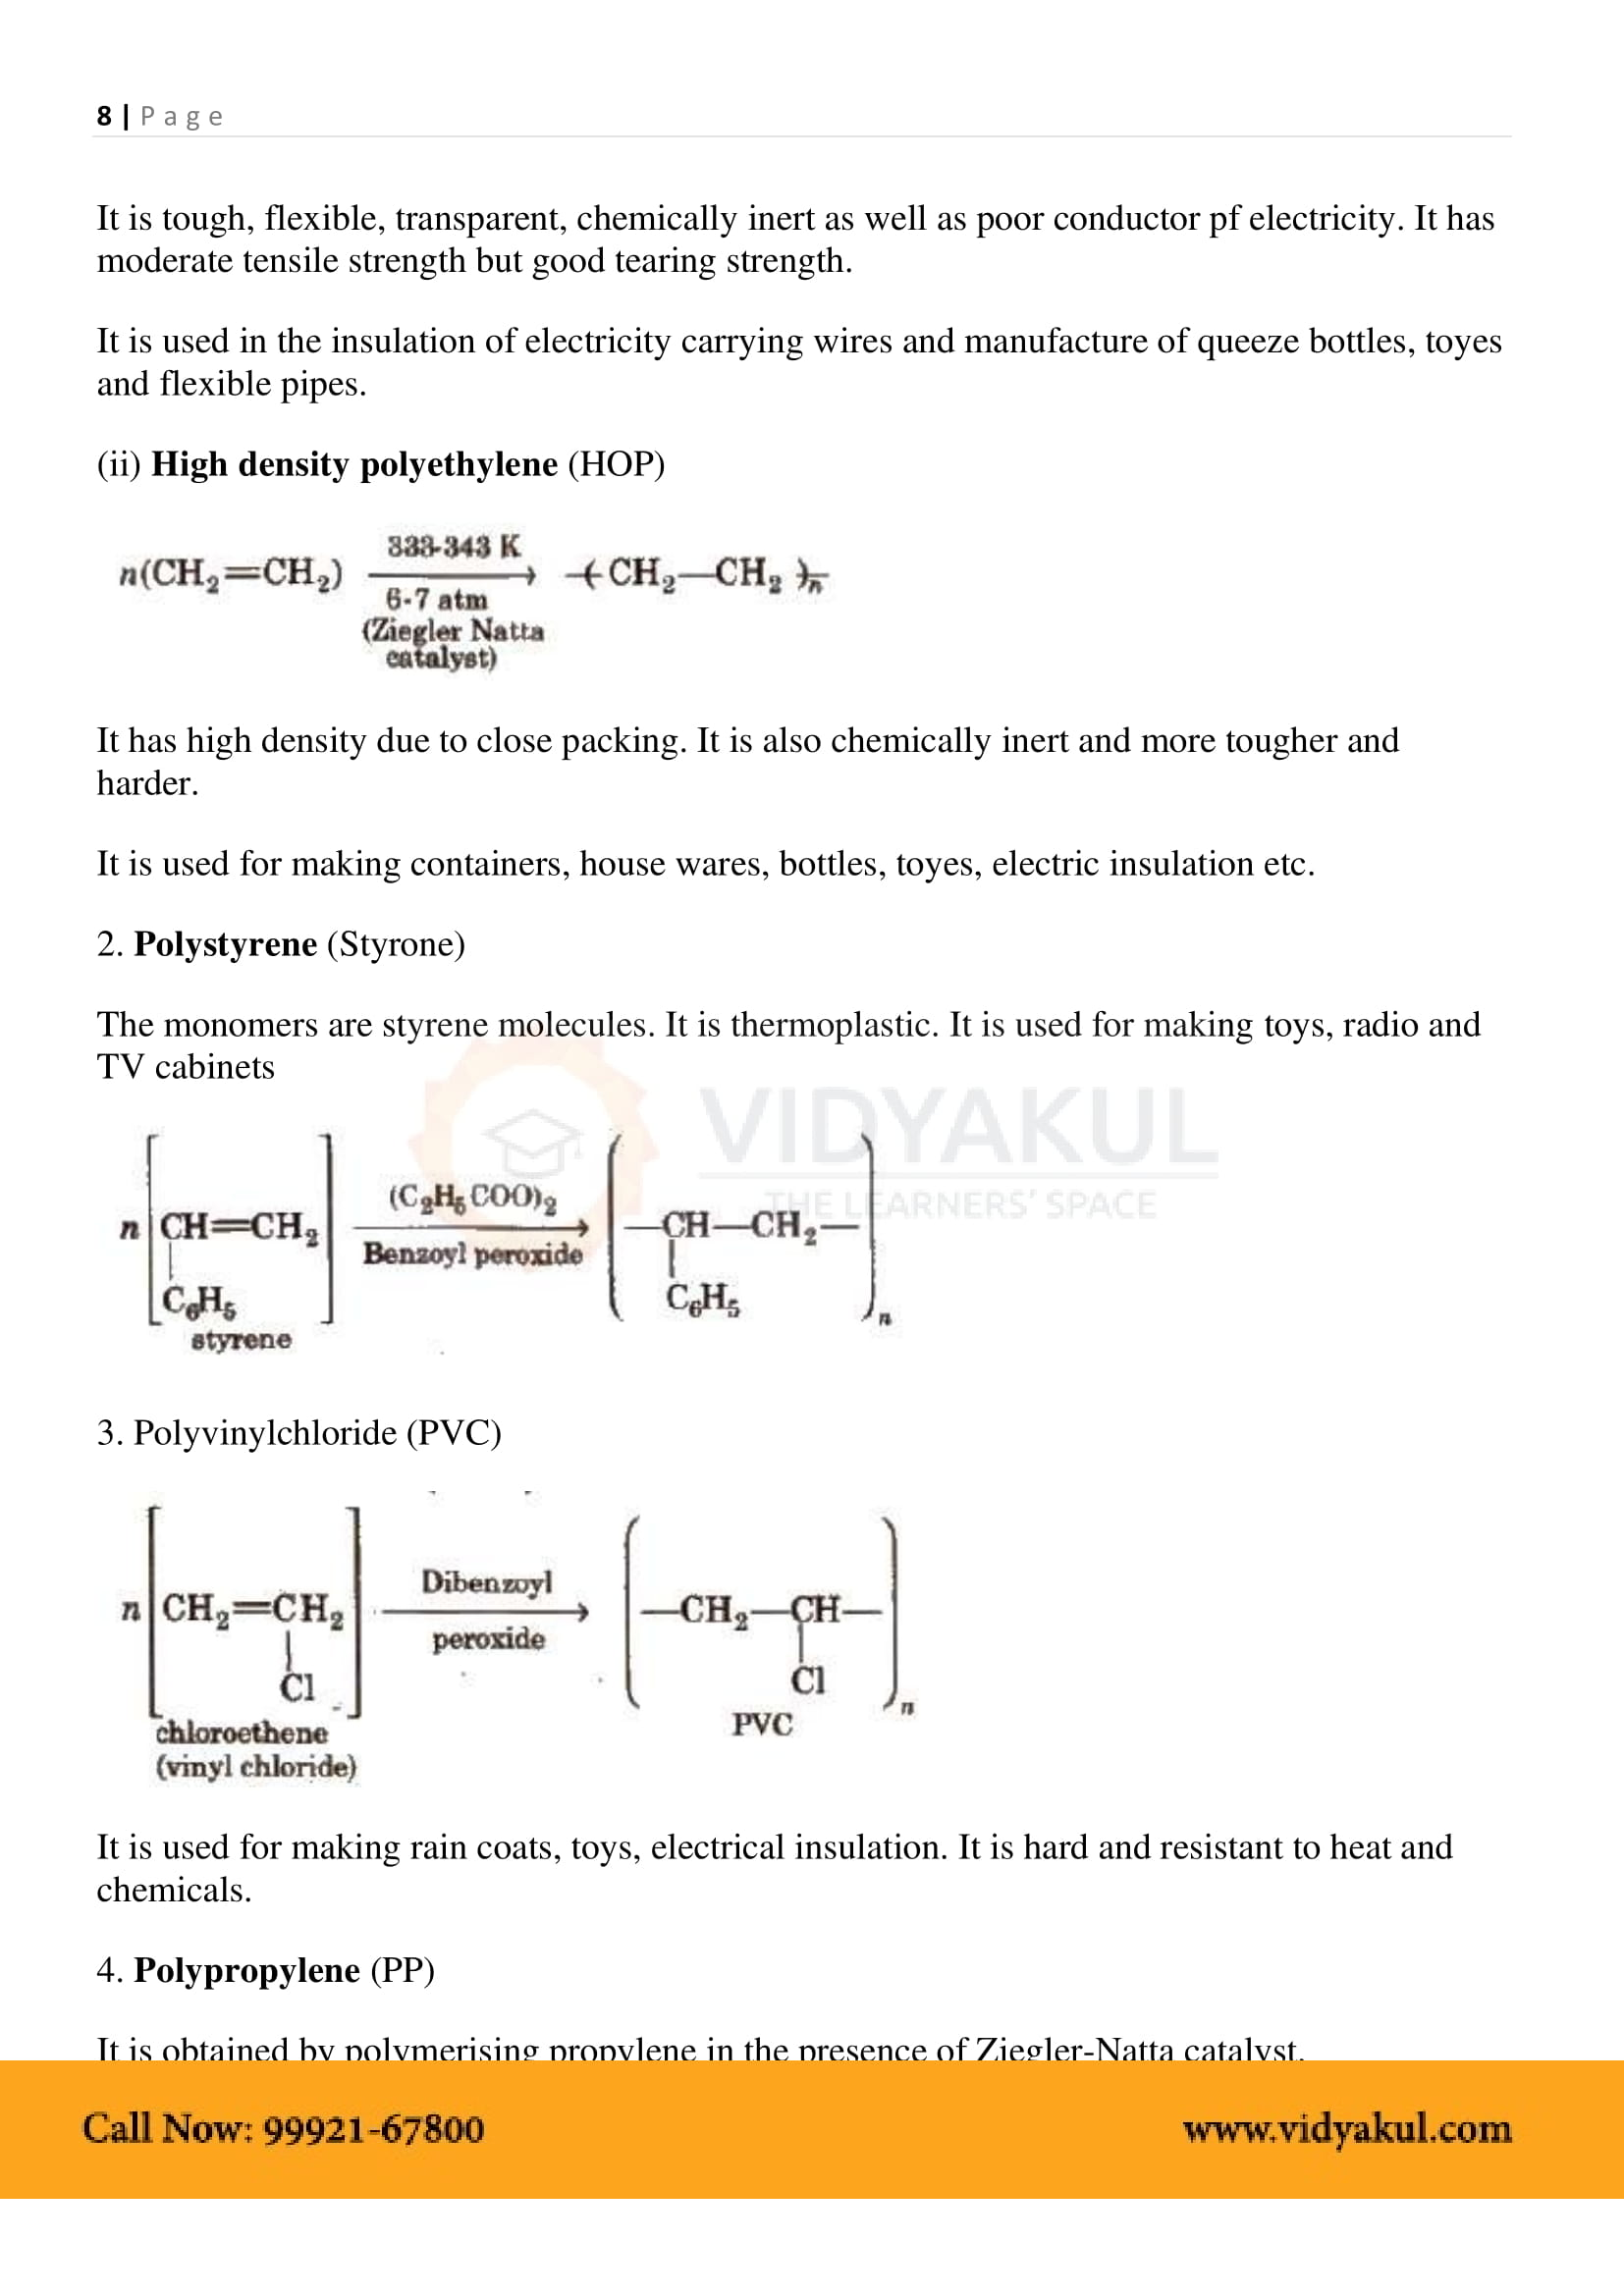 Chemistry class 12 chapter 8 notes pdf | NCERT Solutions